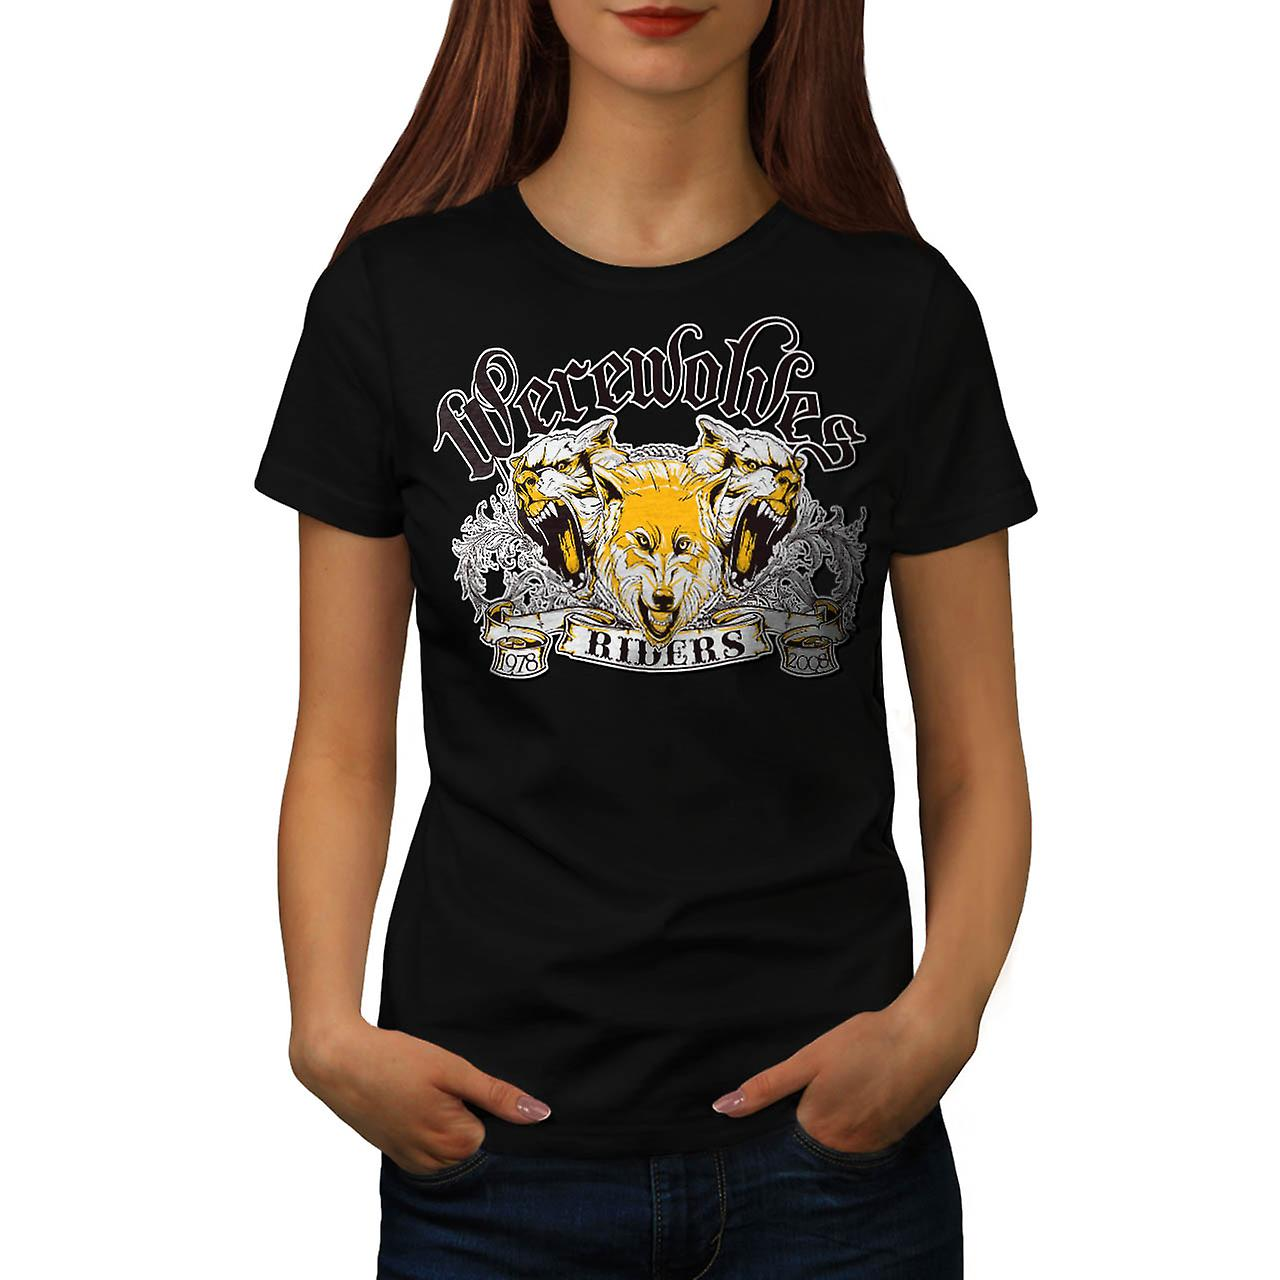 Werewolves Riders Biker Wolf Women Black T-shirt | Wellcoda